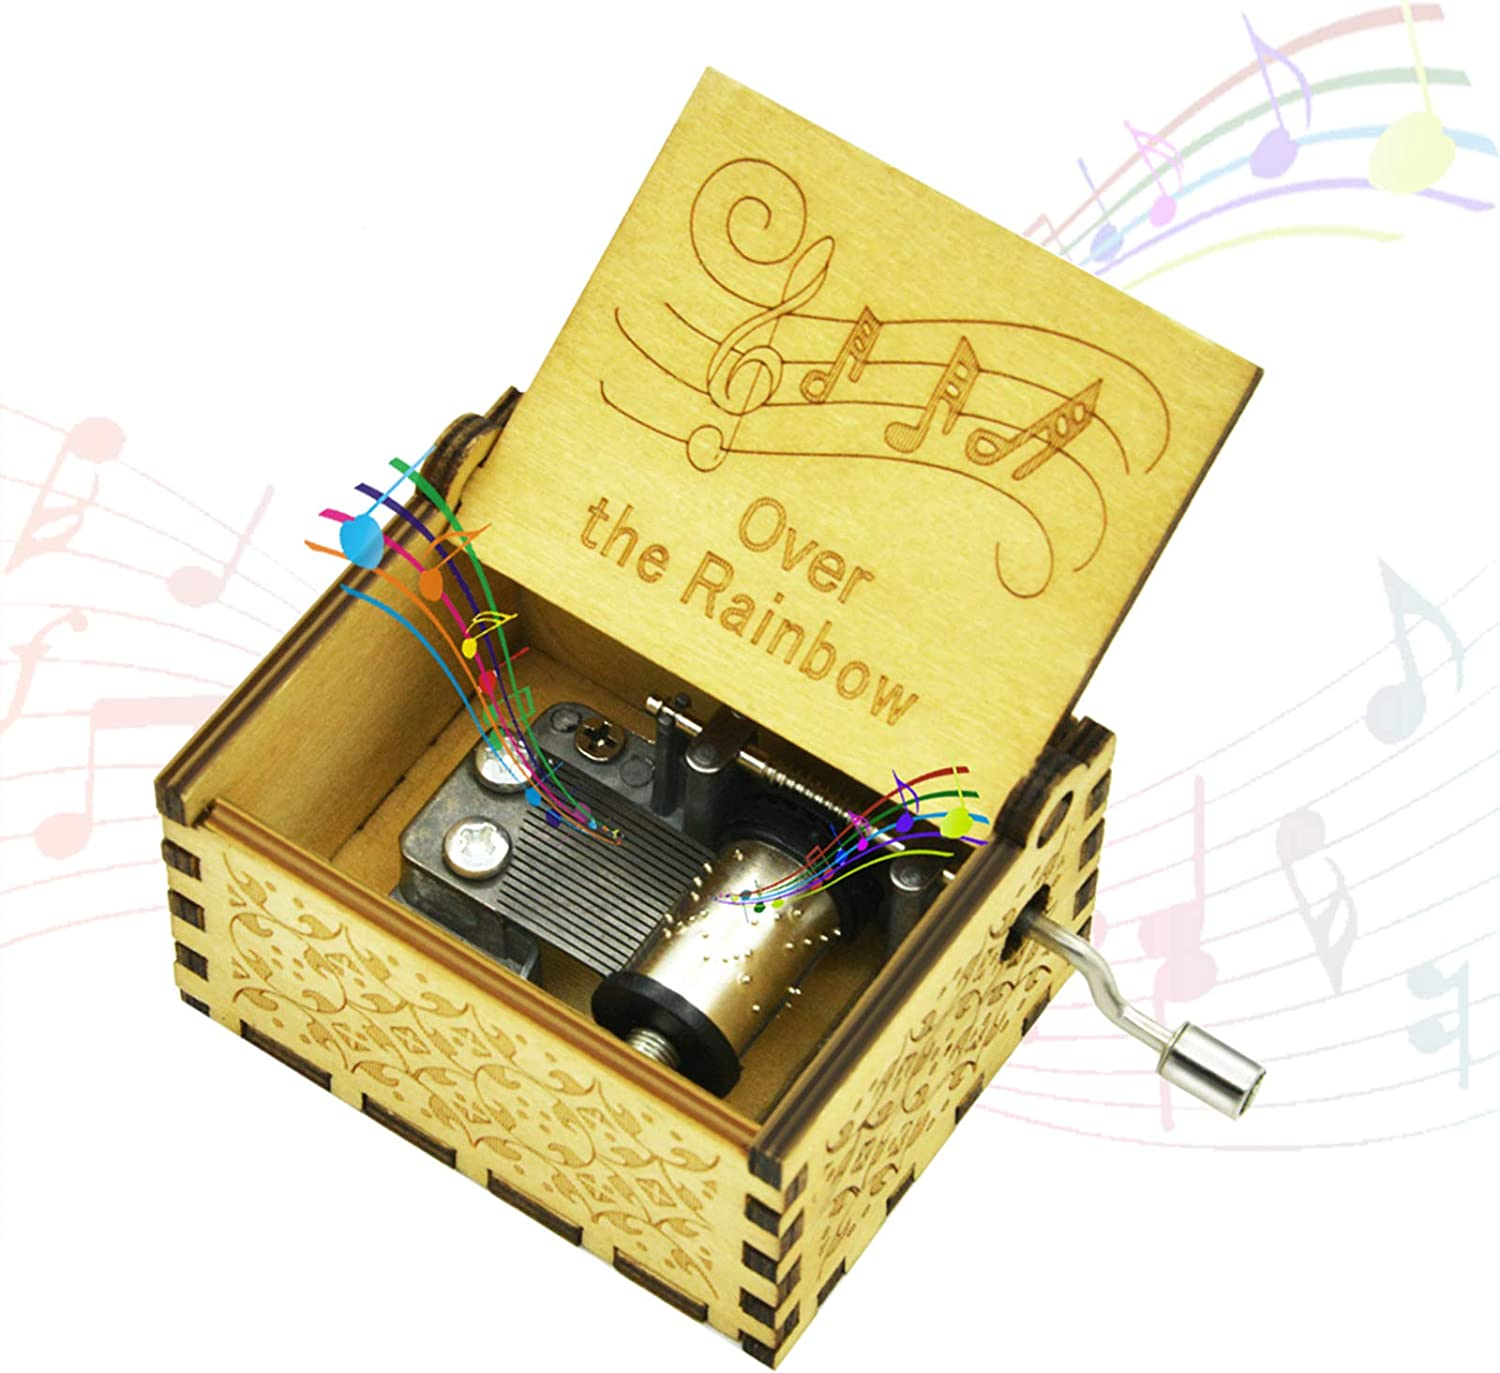 Randon Over The Rainbow Wooden Music Box Vintage Classic Hand Crank Carved Mini Musical Box Gifts for Birthday Christmas Valentine's Day Hand-Operated Toys for Kids Boys Girls (Wood-Over The Rainbow)